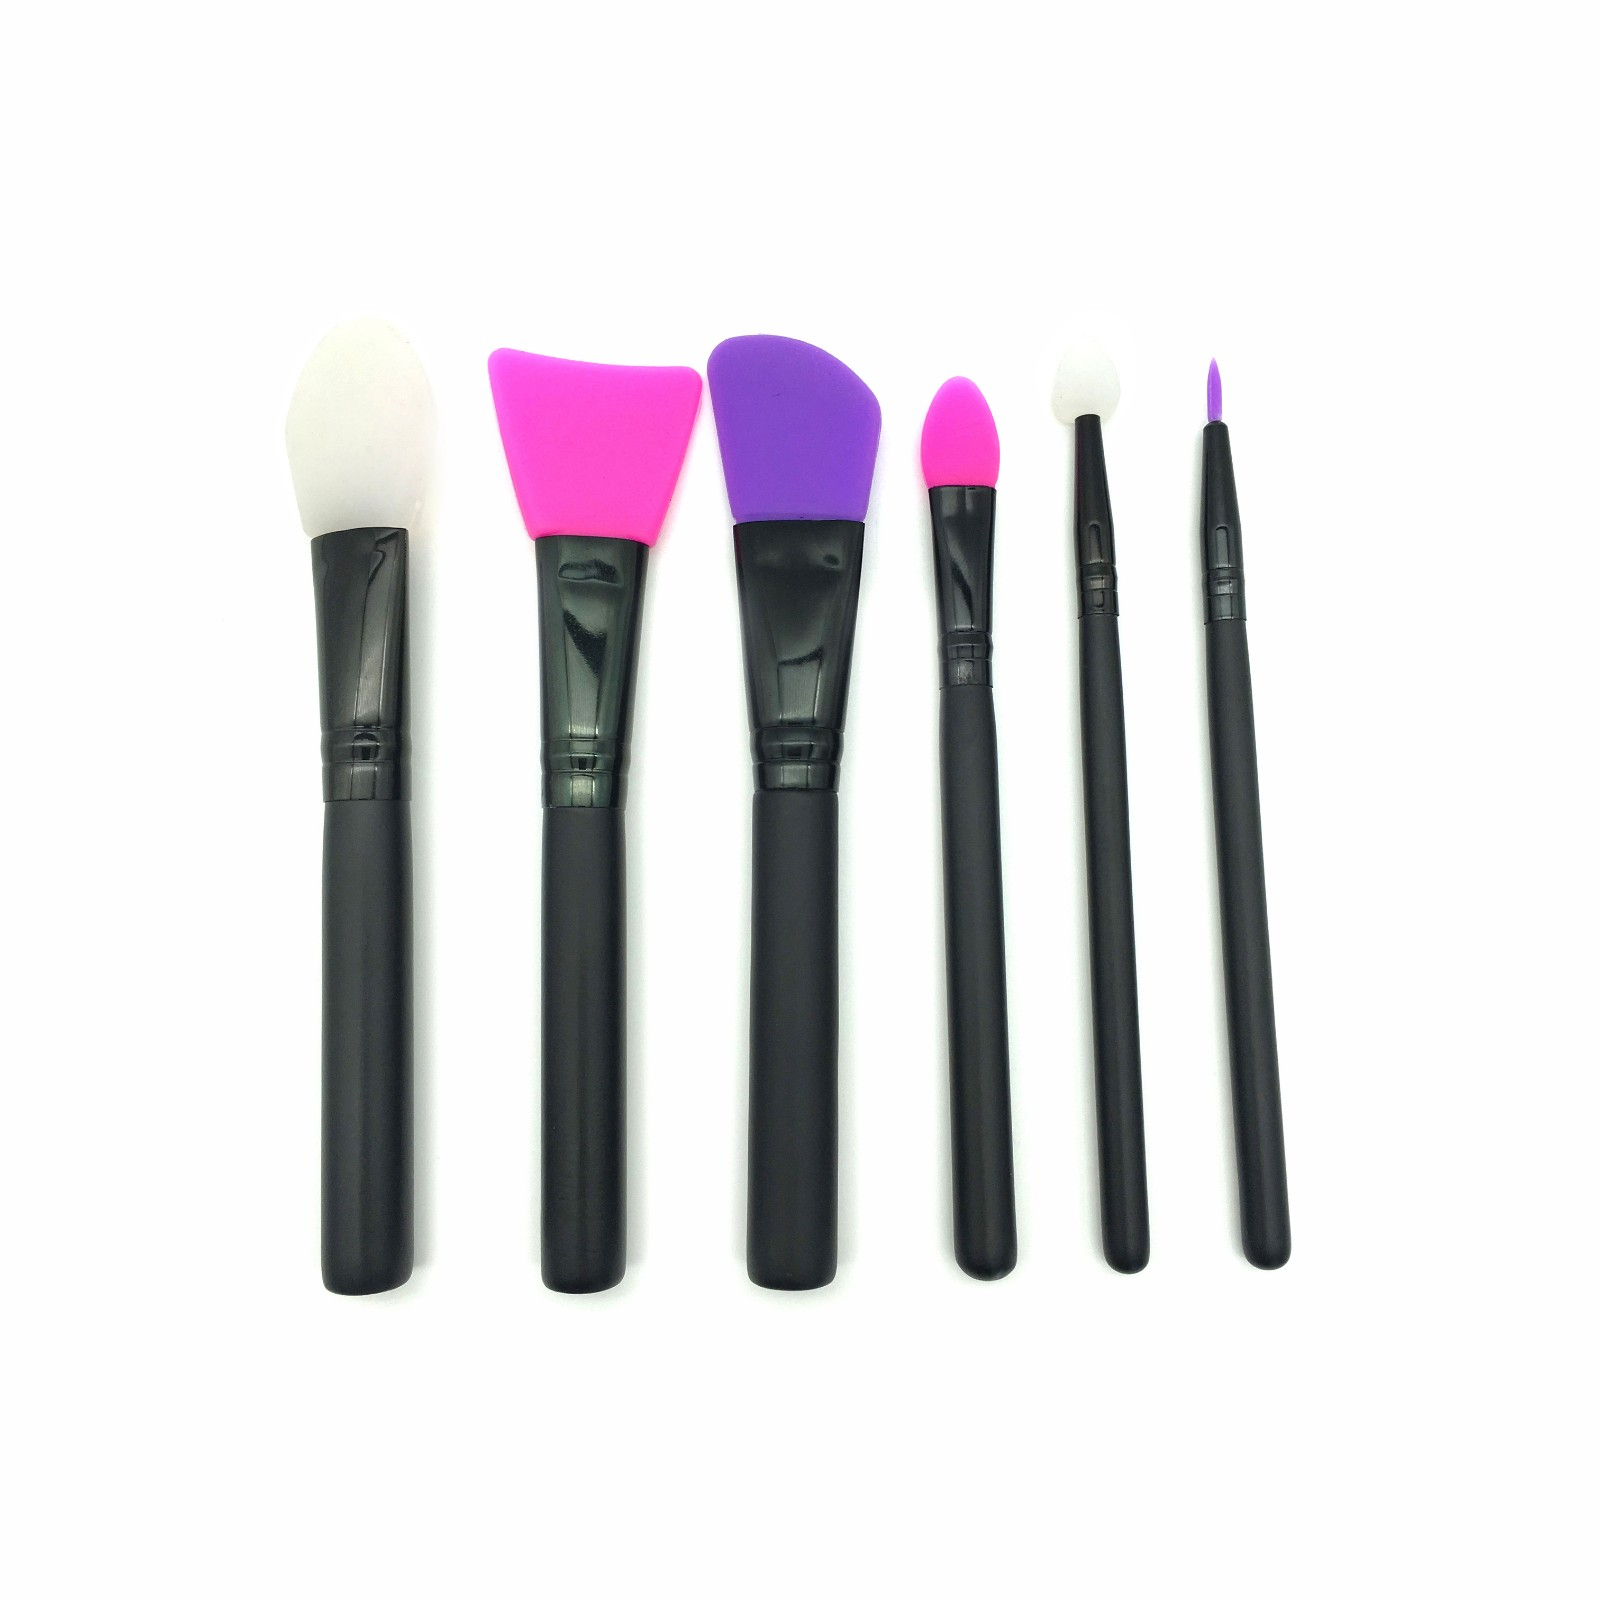 Suprabeauty real techniques makeup brushes factory direct supply for packaging-2